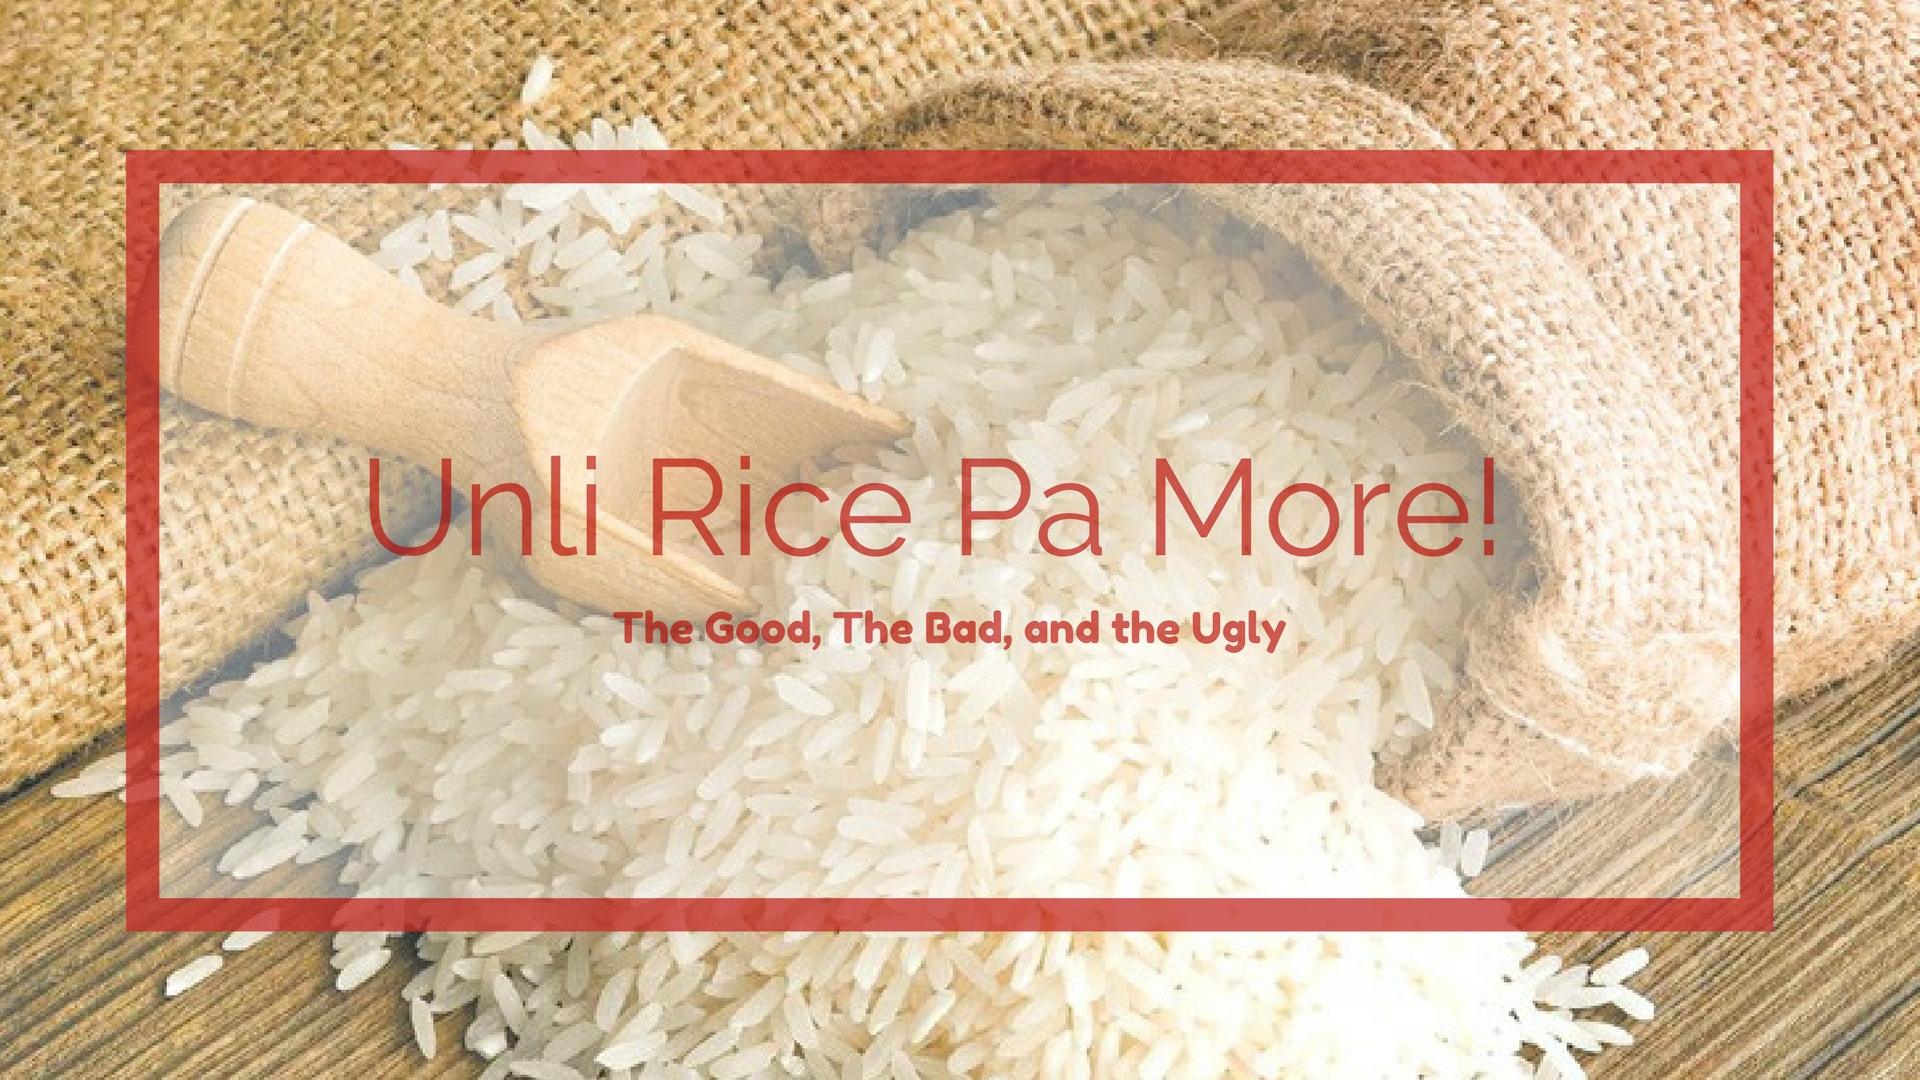 Unli Rice Pa More! The Good, The Bad, and the Ugly